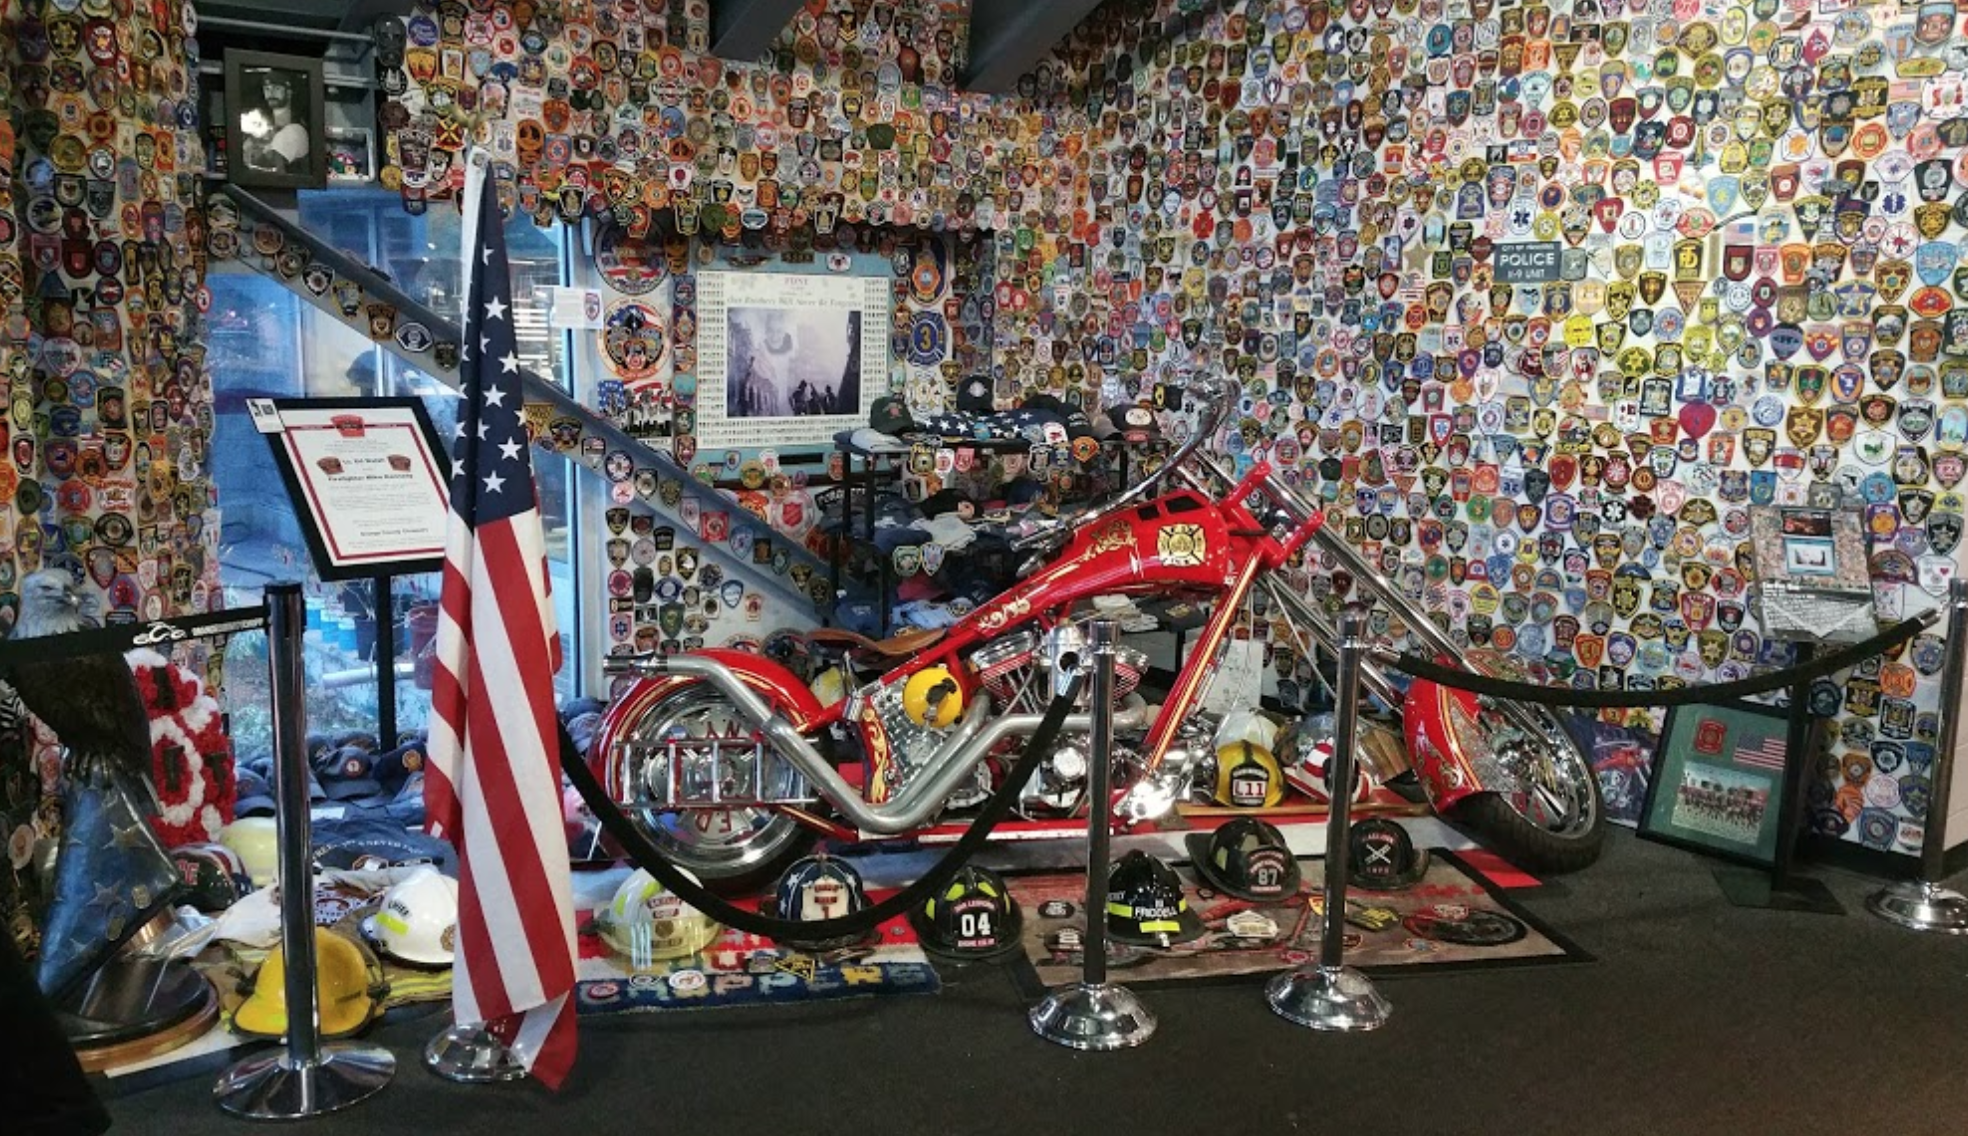 Orange County Choppers Pays Tribute to the 343 Members of FDNY killed on September 11, 2001.